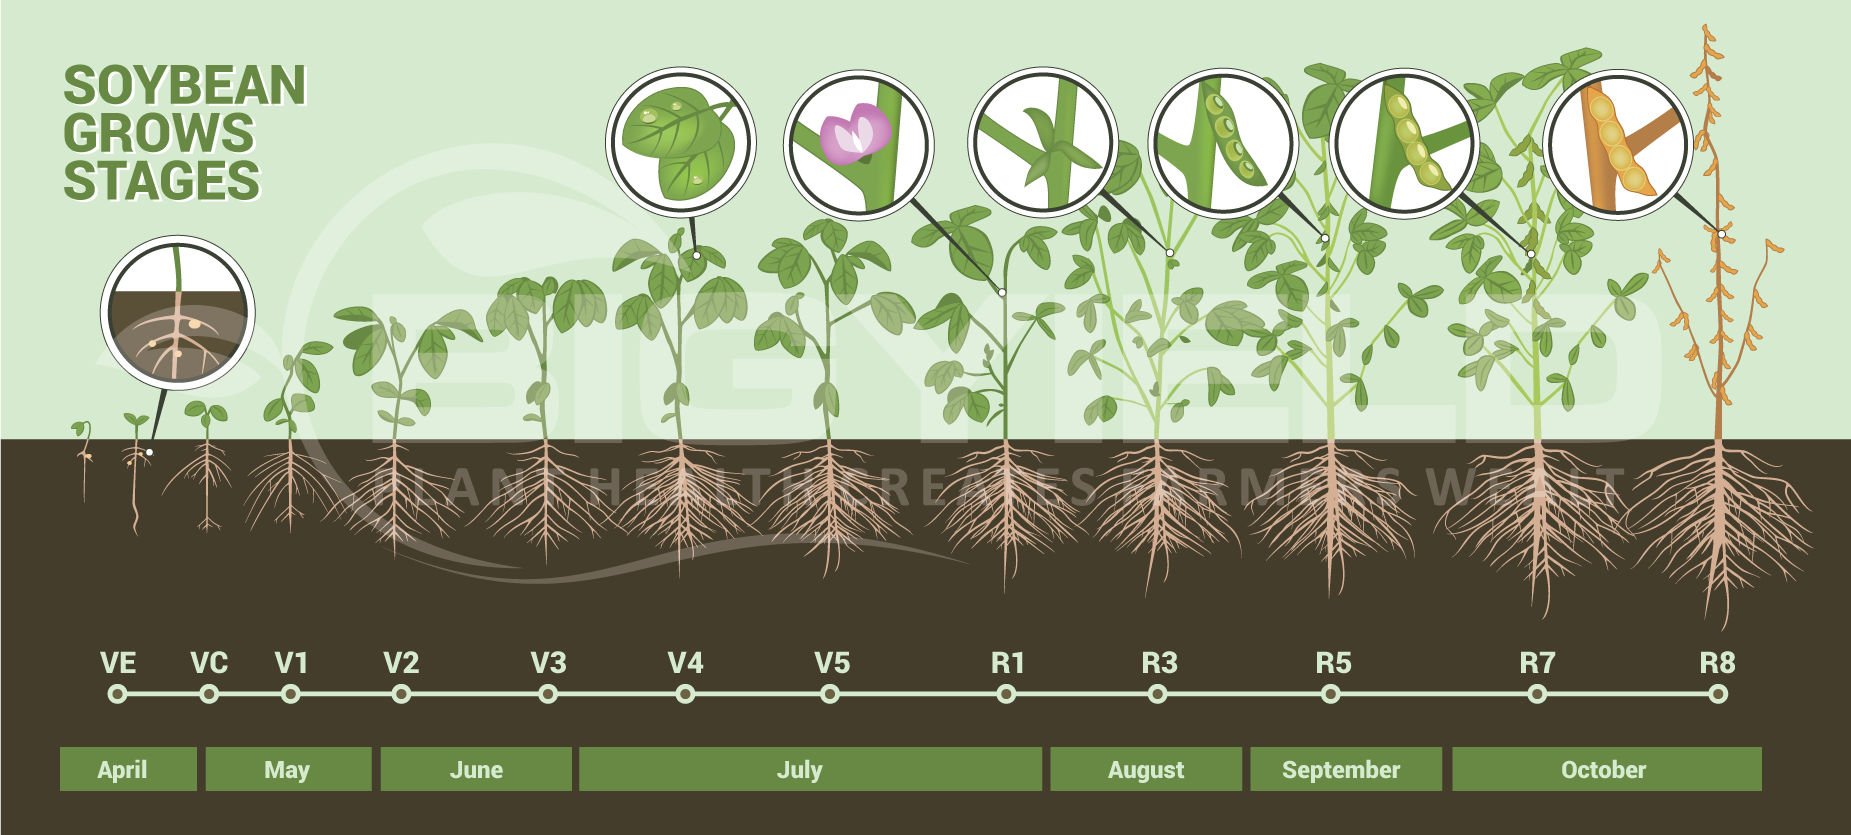 Soybean grows stages mashastudio soybean growth stages nvjuhfo Images